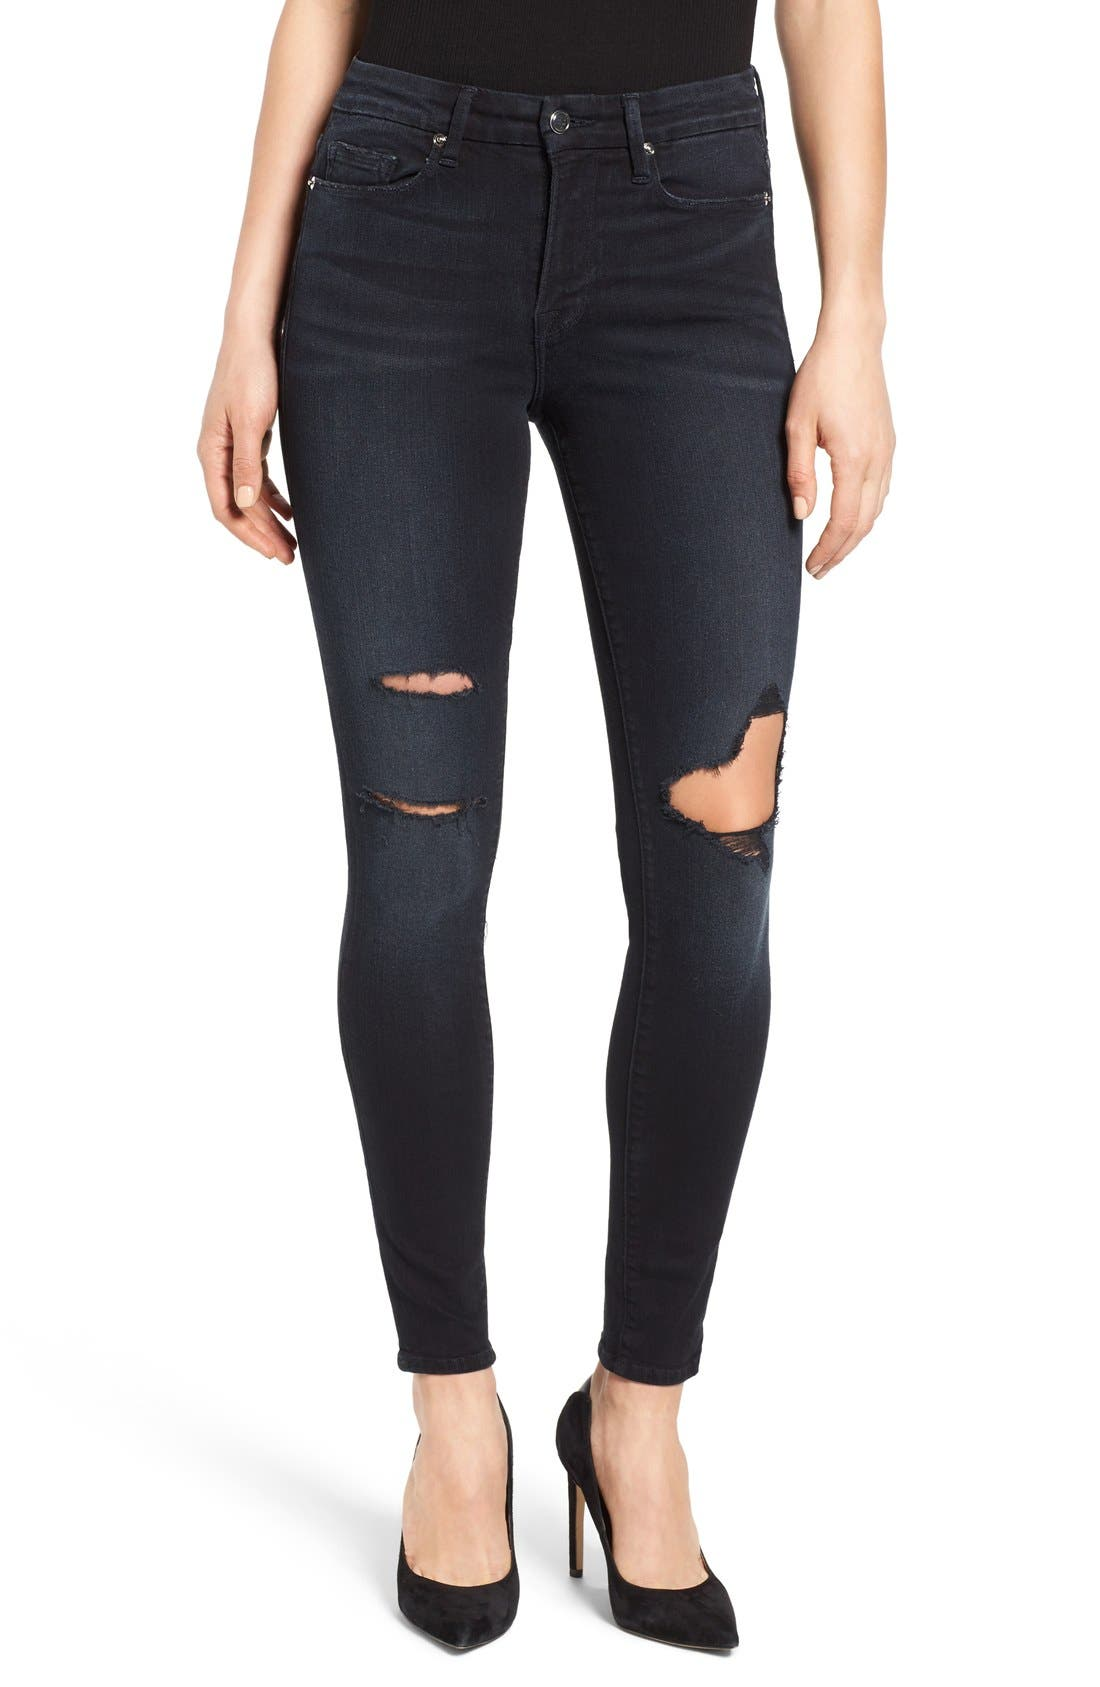 Alternate Image 1 Selected - Good American Good Legs High Rise Ripped Skinny Jeans (Blue 001) (Extended Sizes)